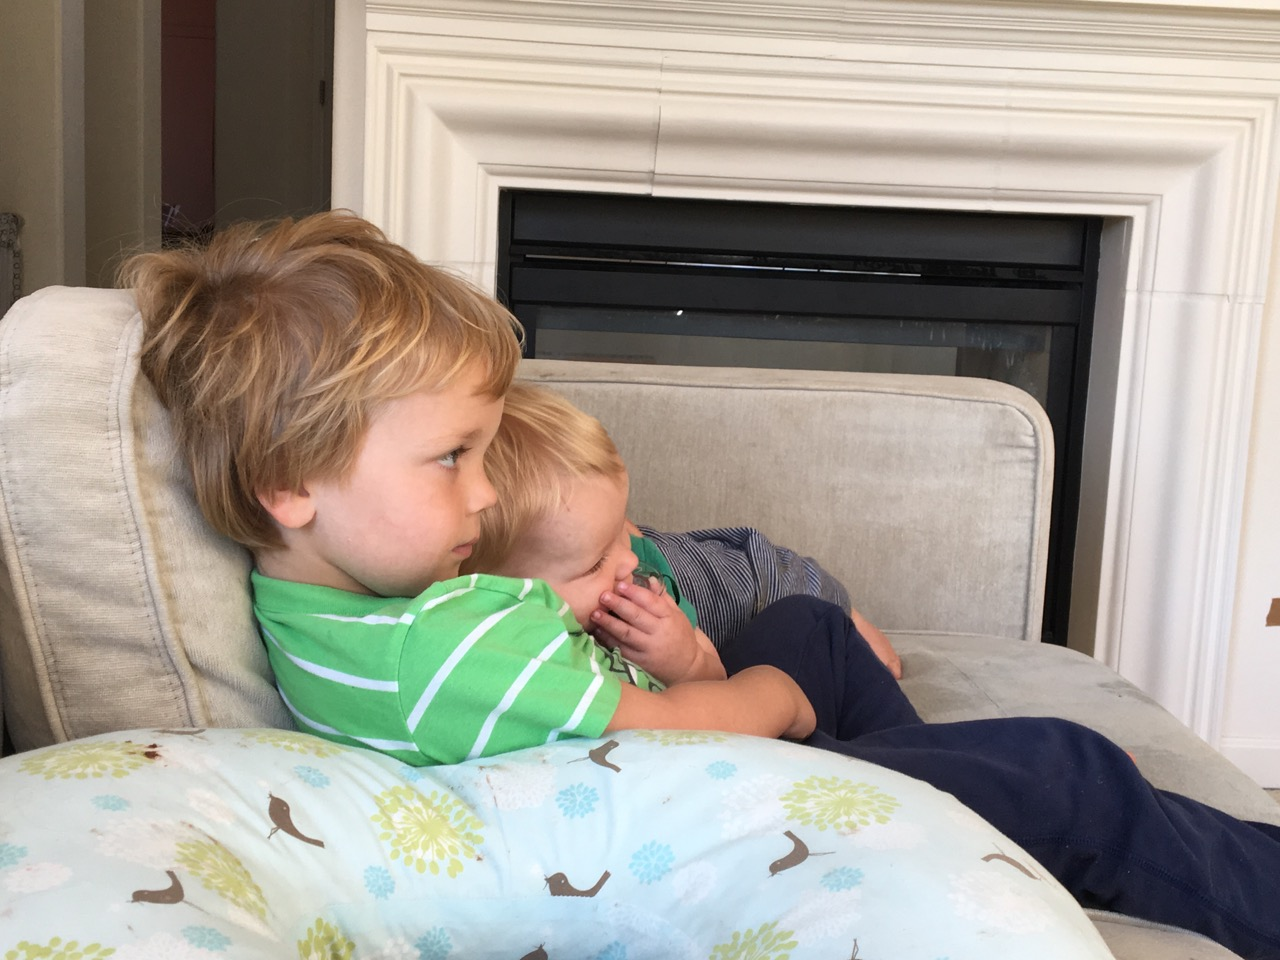 Snuggling and watching tv with brother